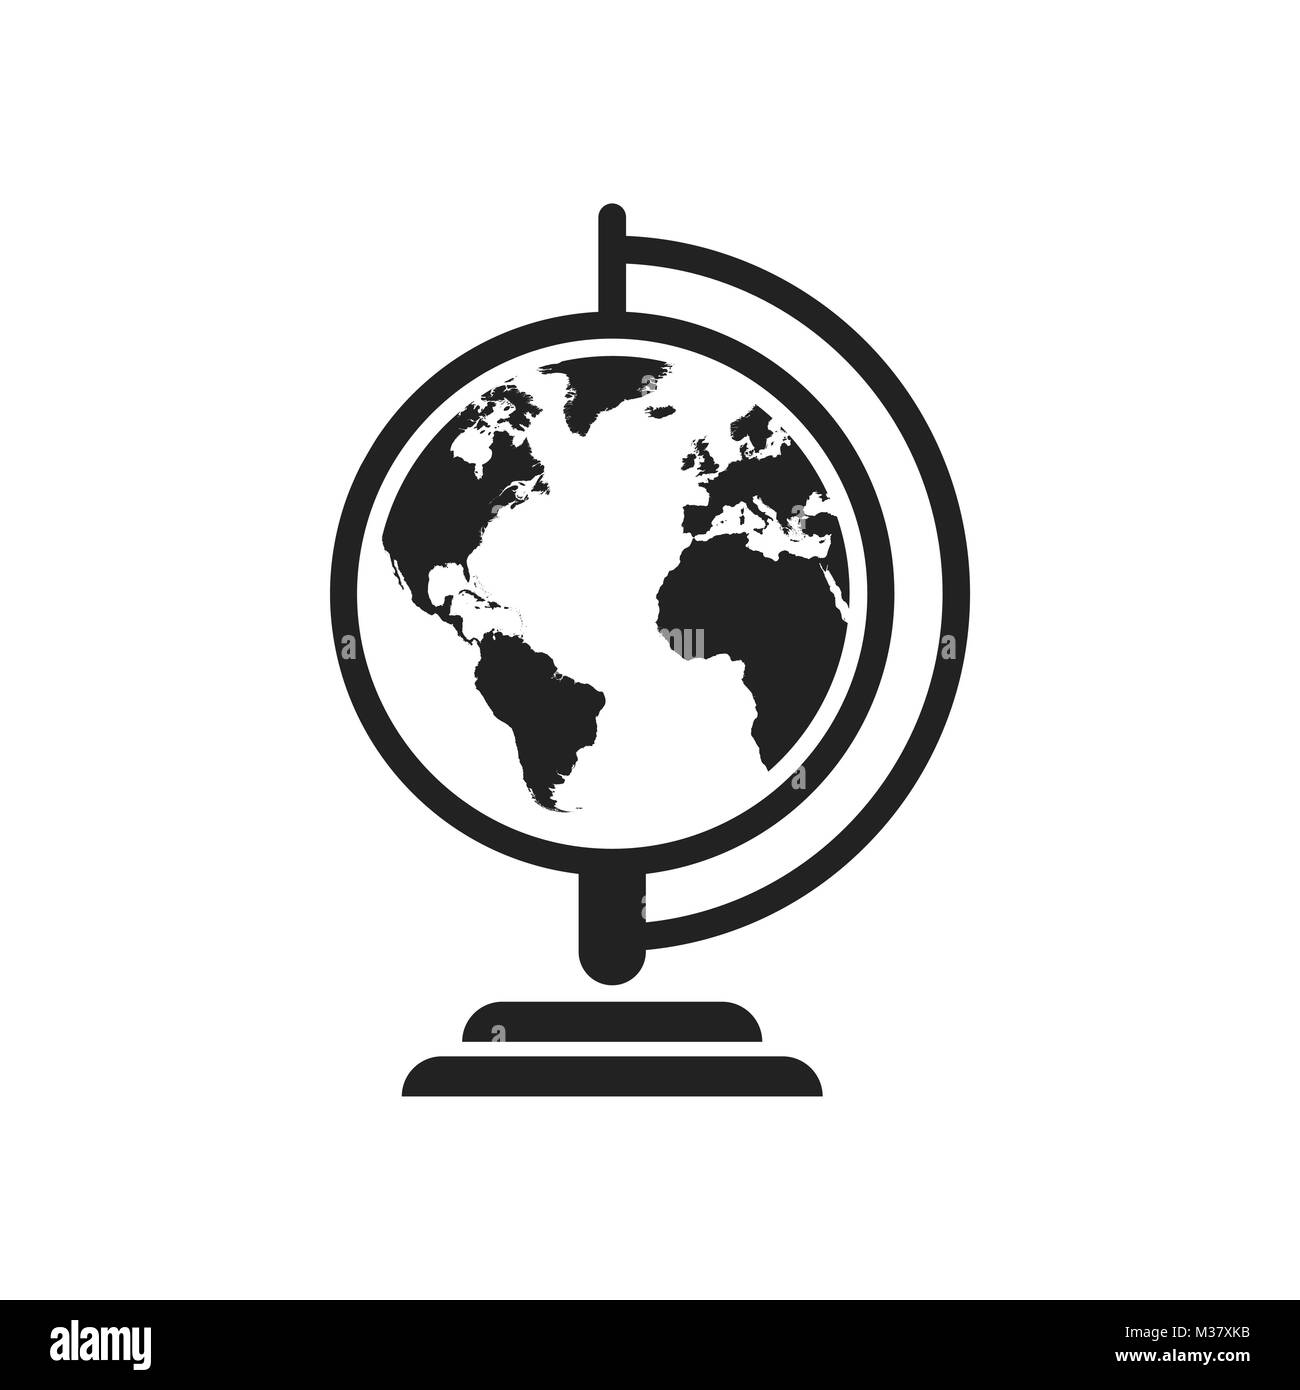 Globe world map vector icon round earth flat vector illustration globe world map vector icon round earth flat vector illustration planet business concept pictogram on white background gumiabroncs Gallery